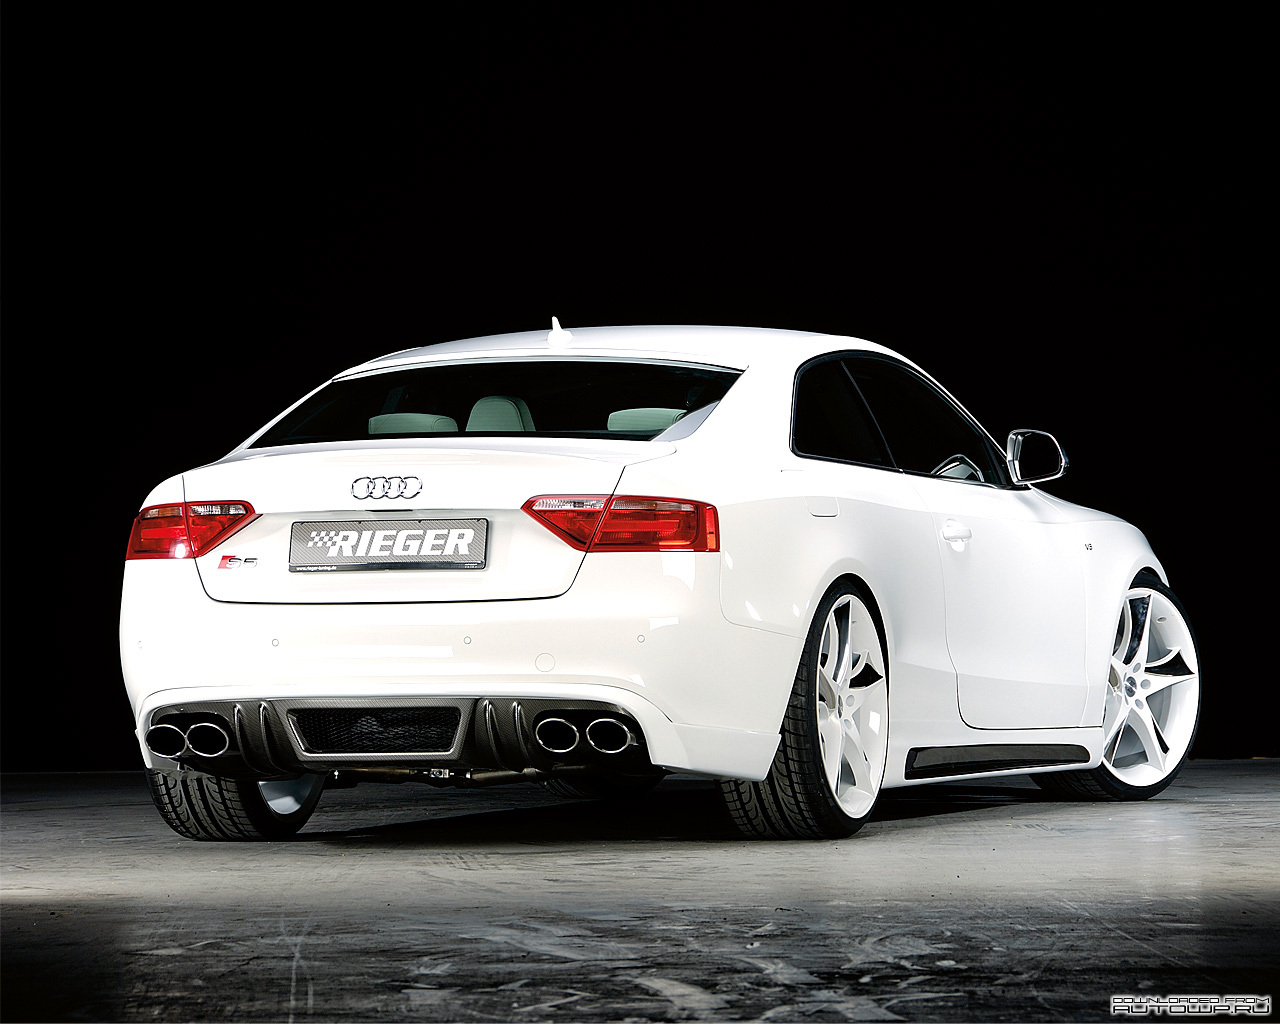 Best car wallpapers cars wallpapers and pictures car images car pics carpicture - Best wallpapers for s5 ...